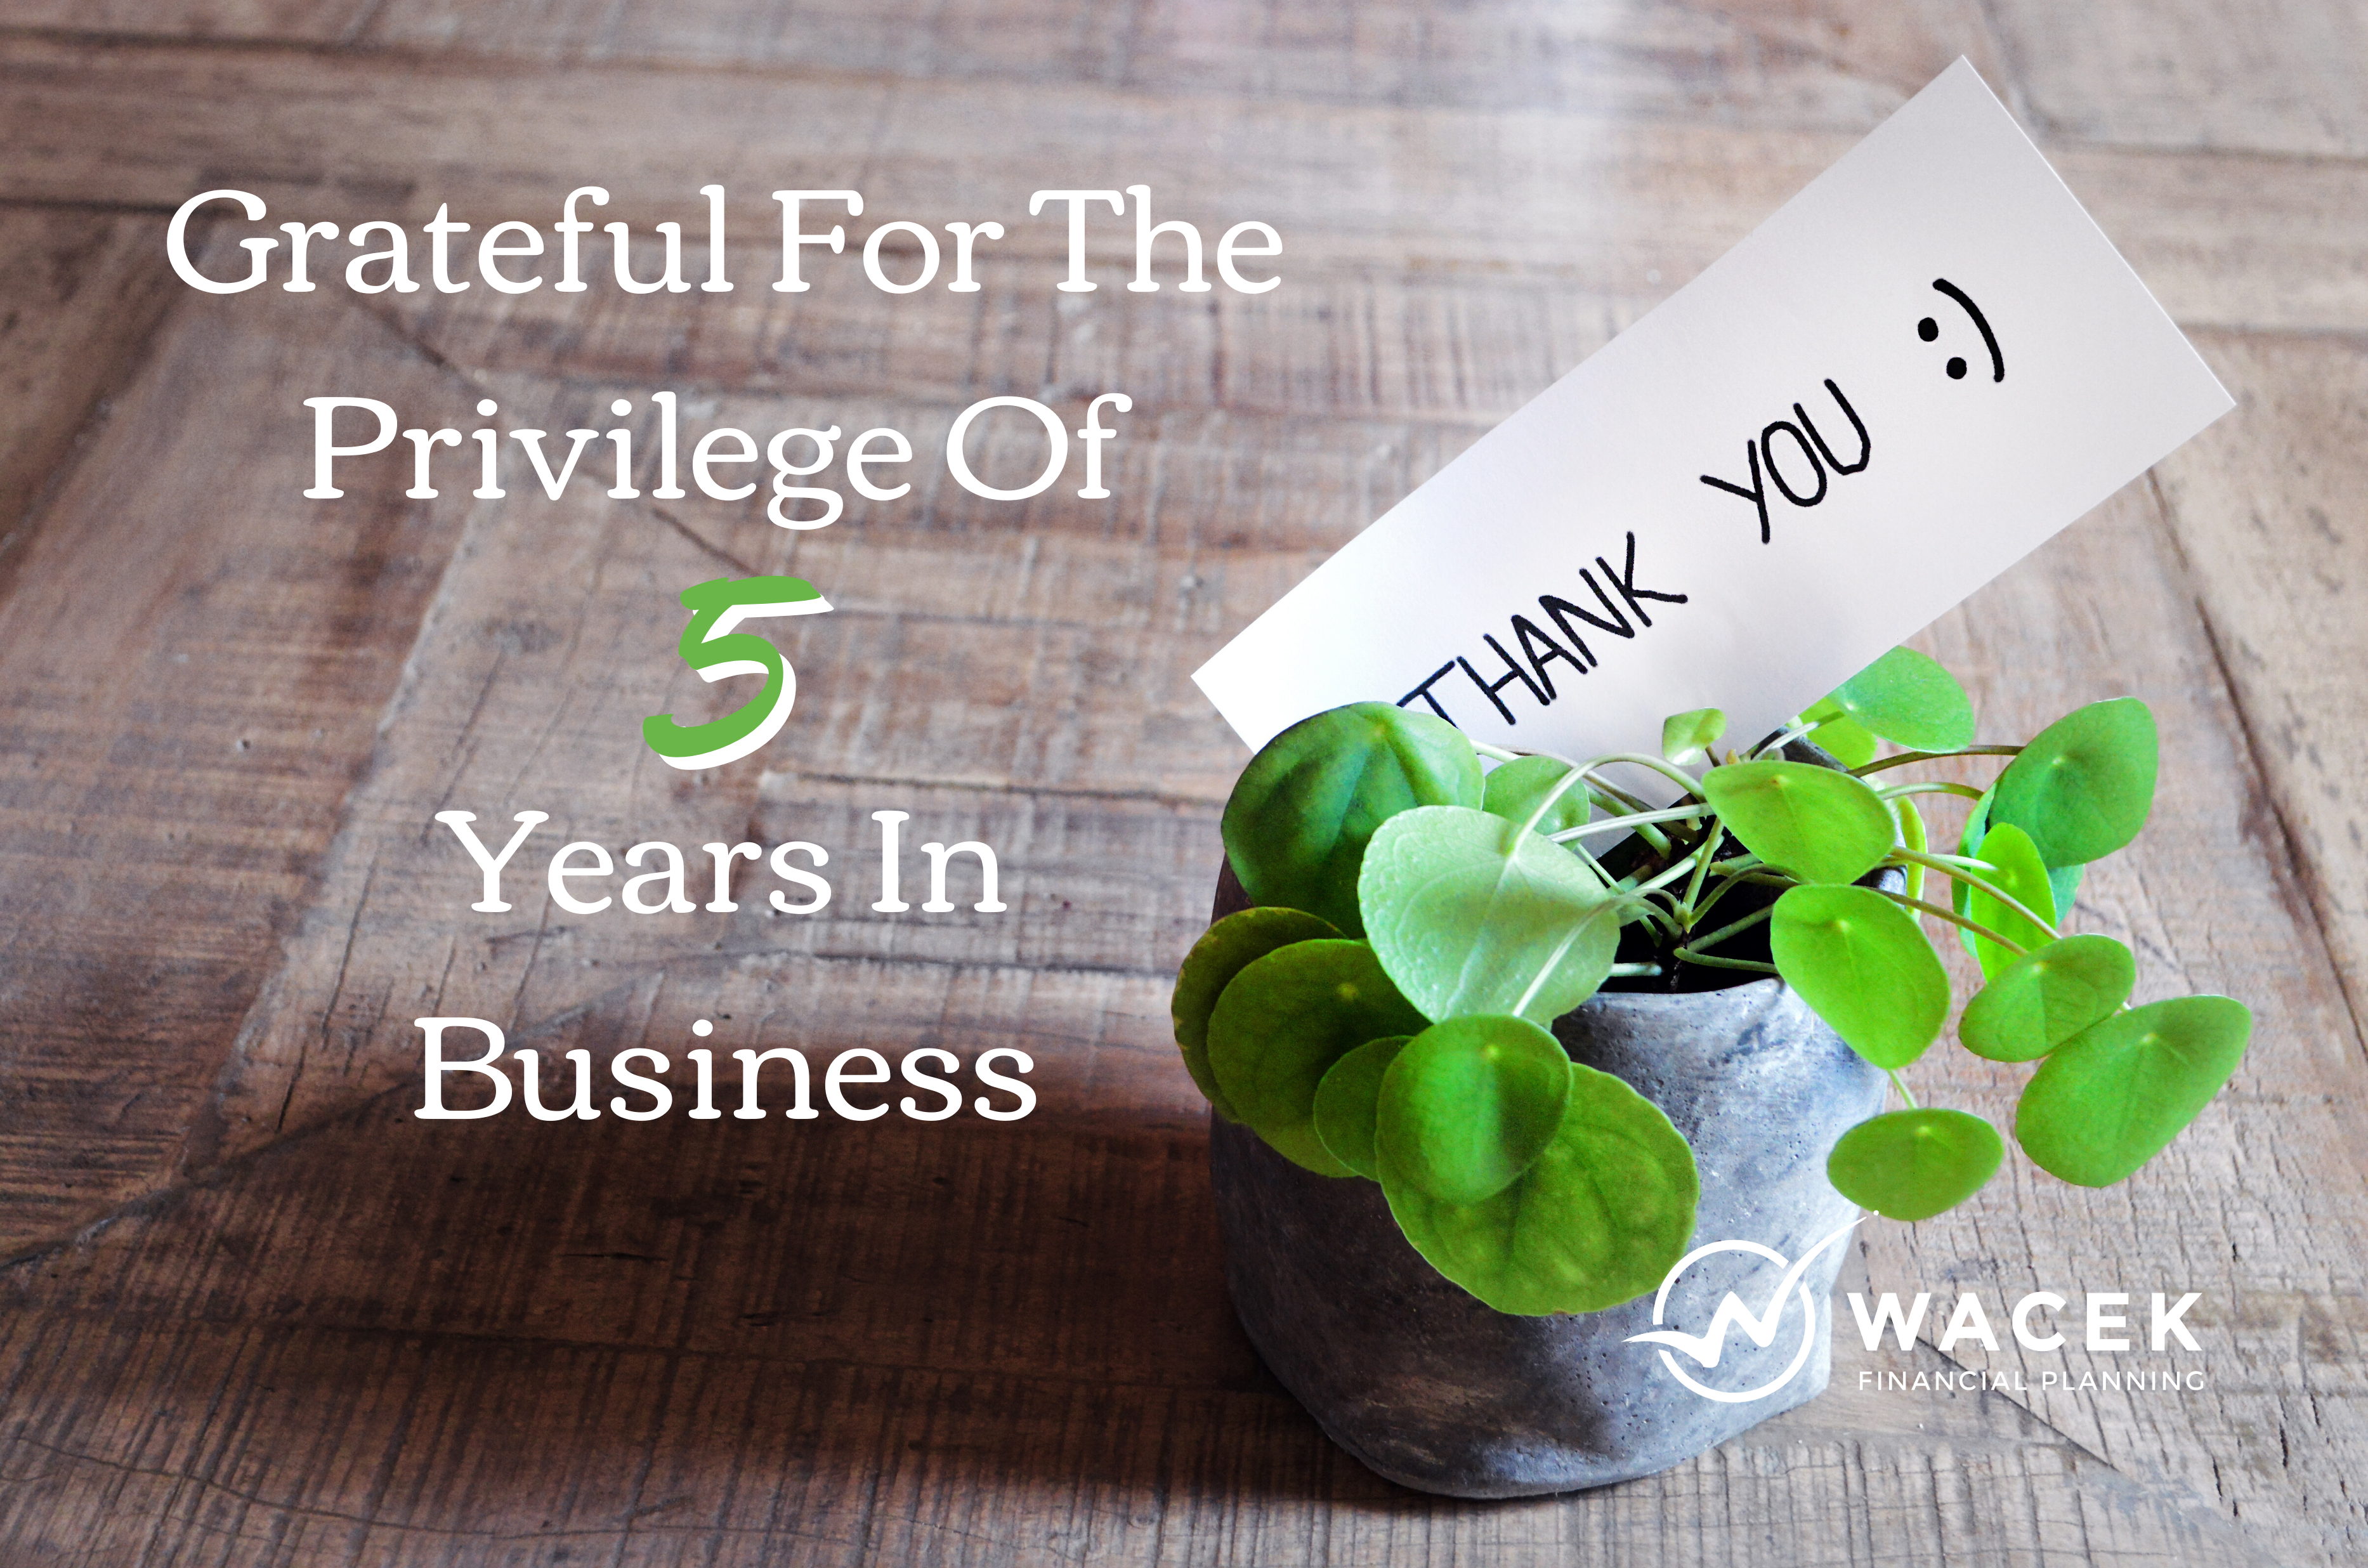 Grateful For The Privilege Of 5 Years In Business Thumbnail